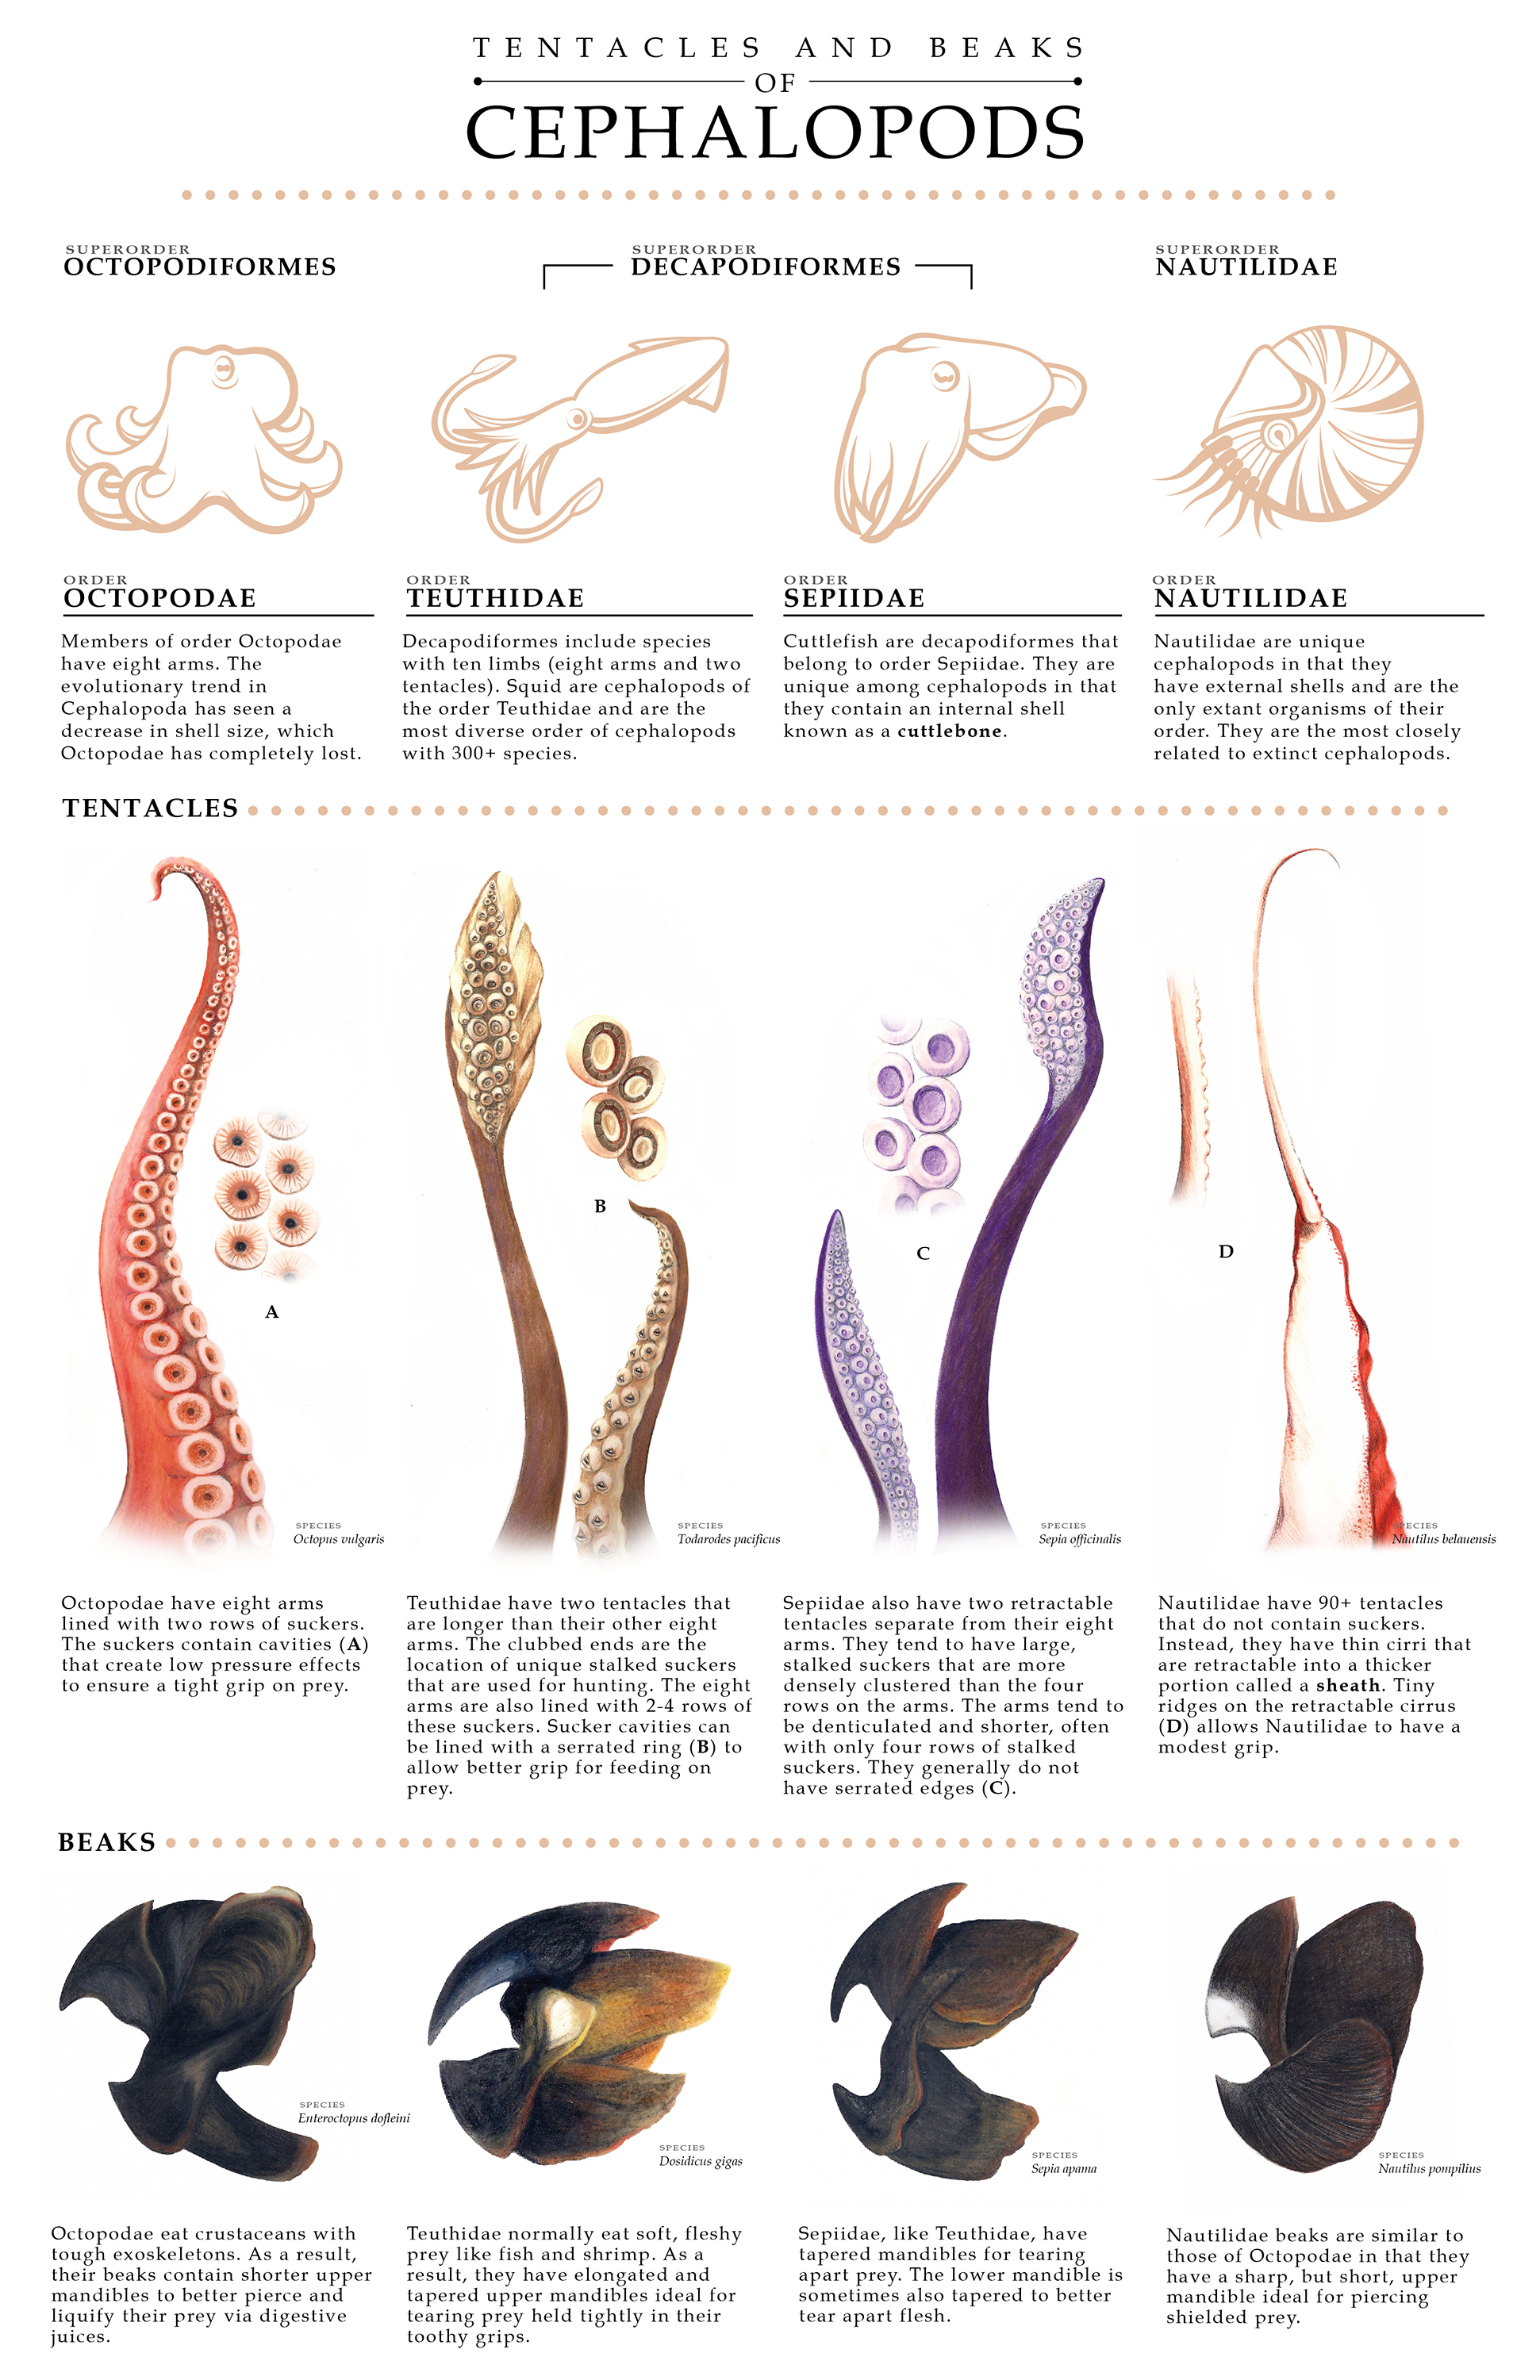 Tentacles and Beaks of Cephalopods